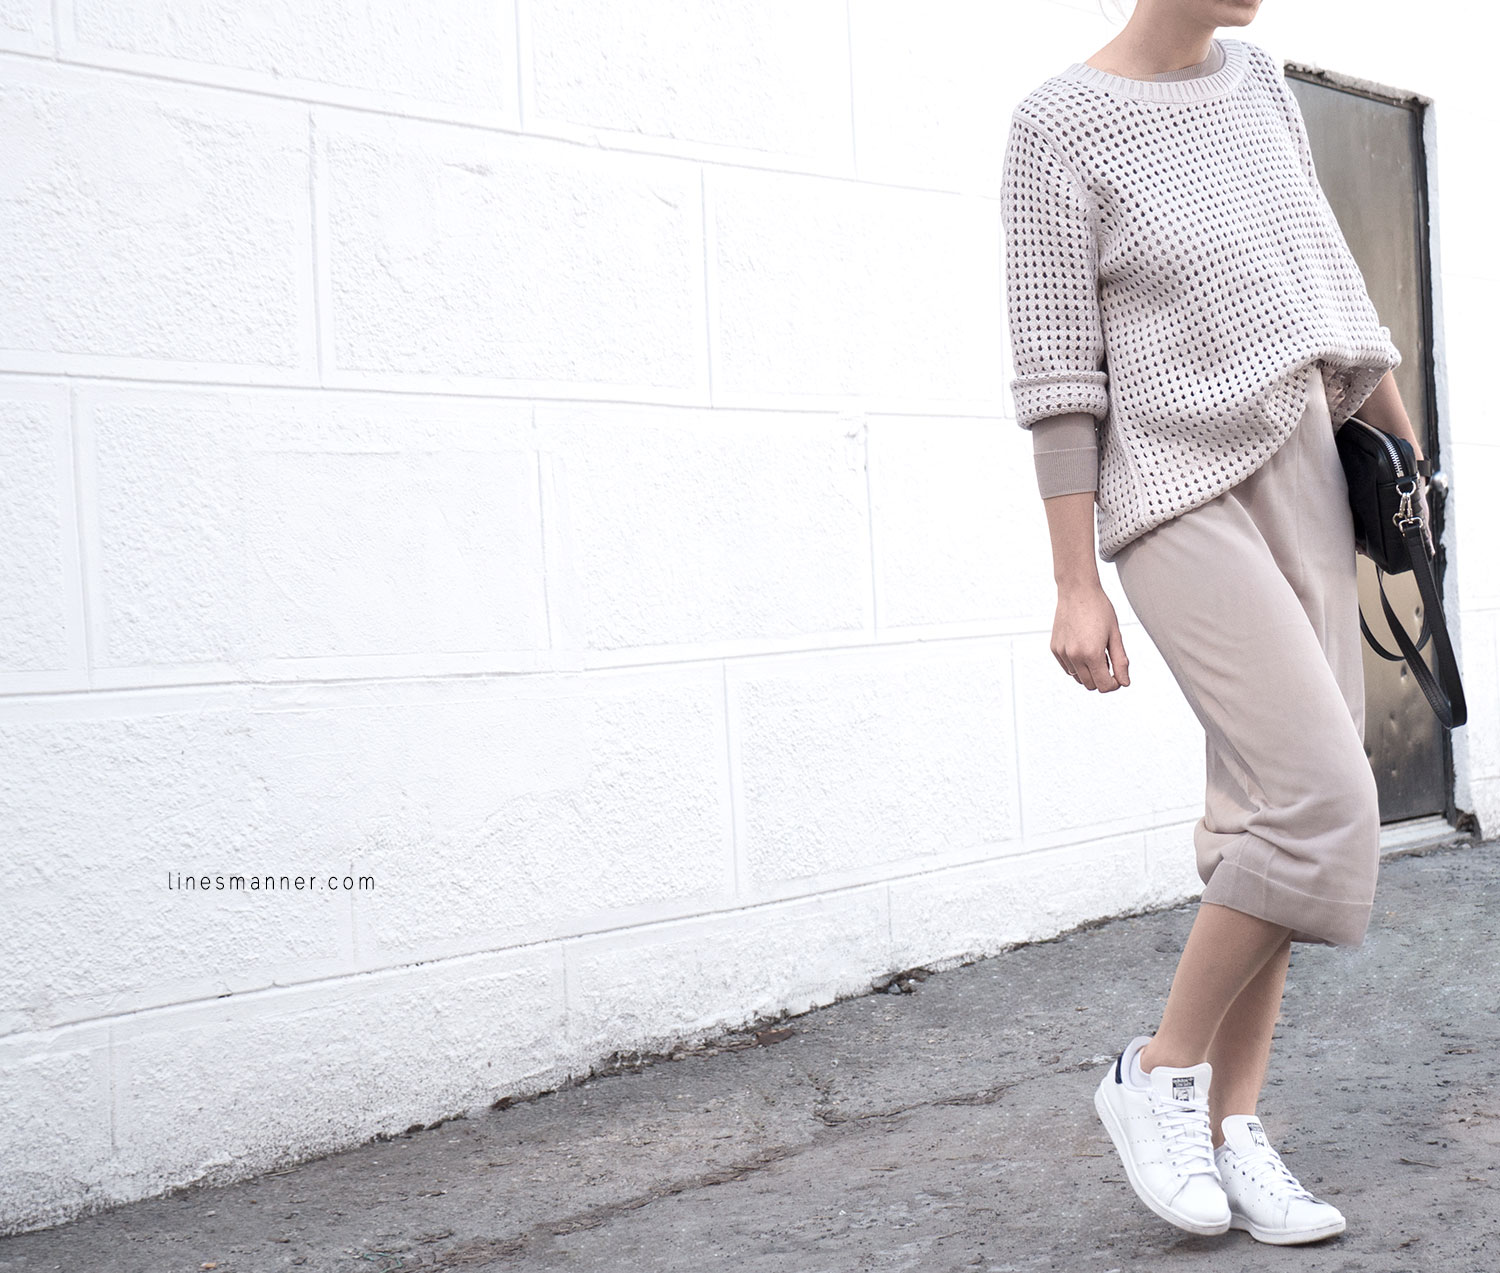 Lines-Manner-Tonal-Shades-Neutrals-Undertones-Essentials-Details-Elegant-Casual-Knit-Maxi_dress-Beige-Cream-Nude-Dimension-Skin-COS-Light-8